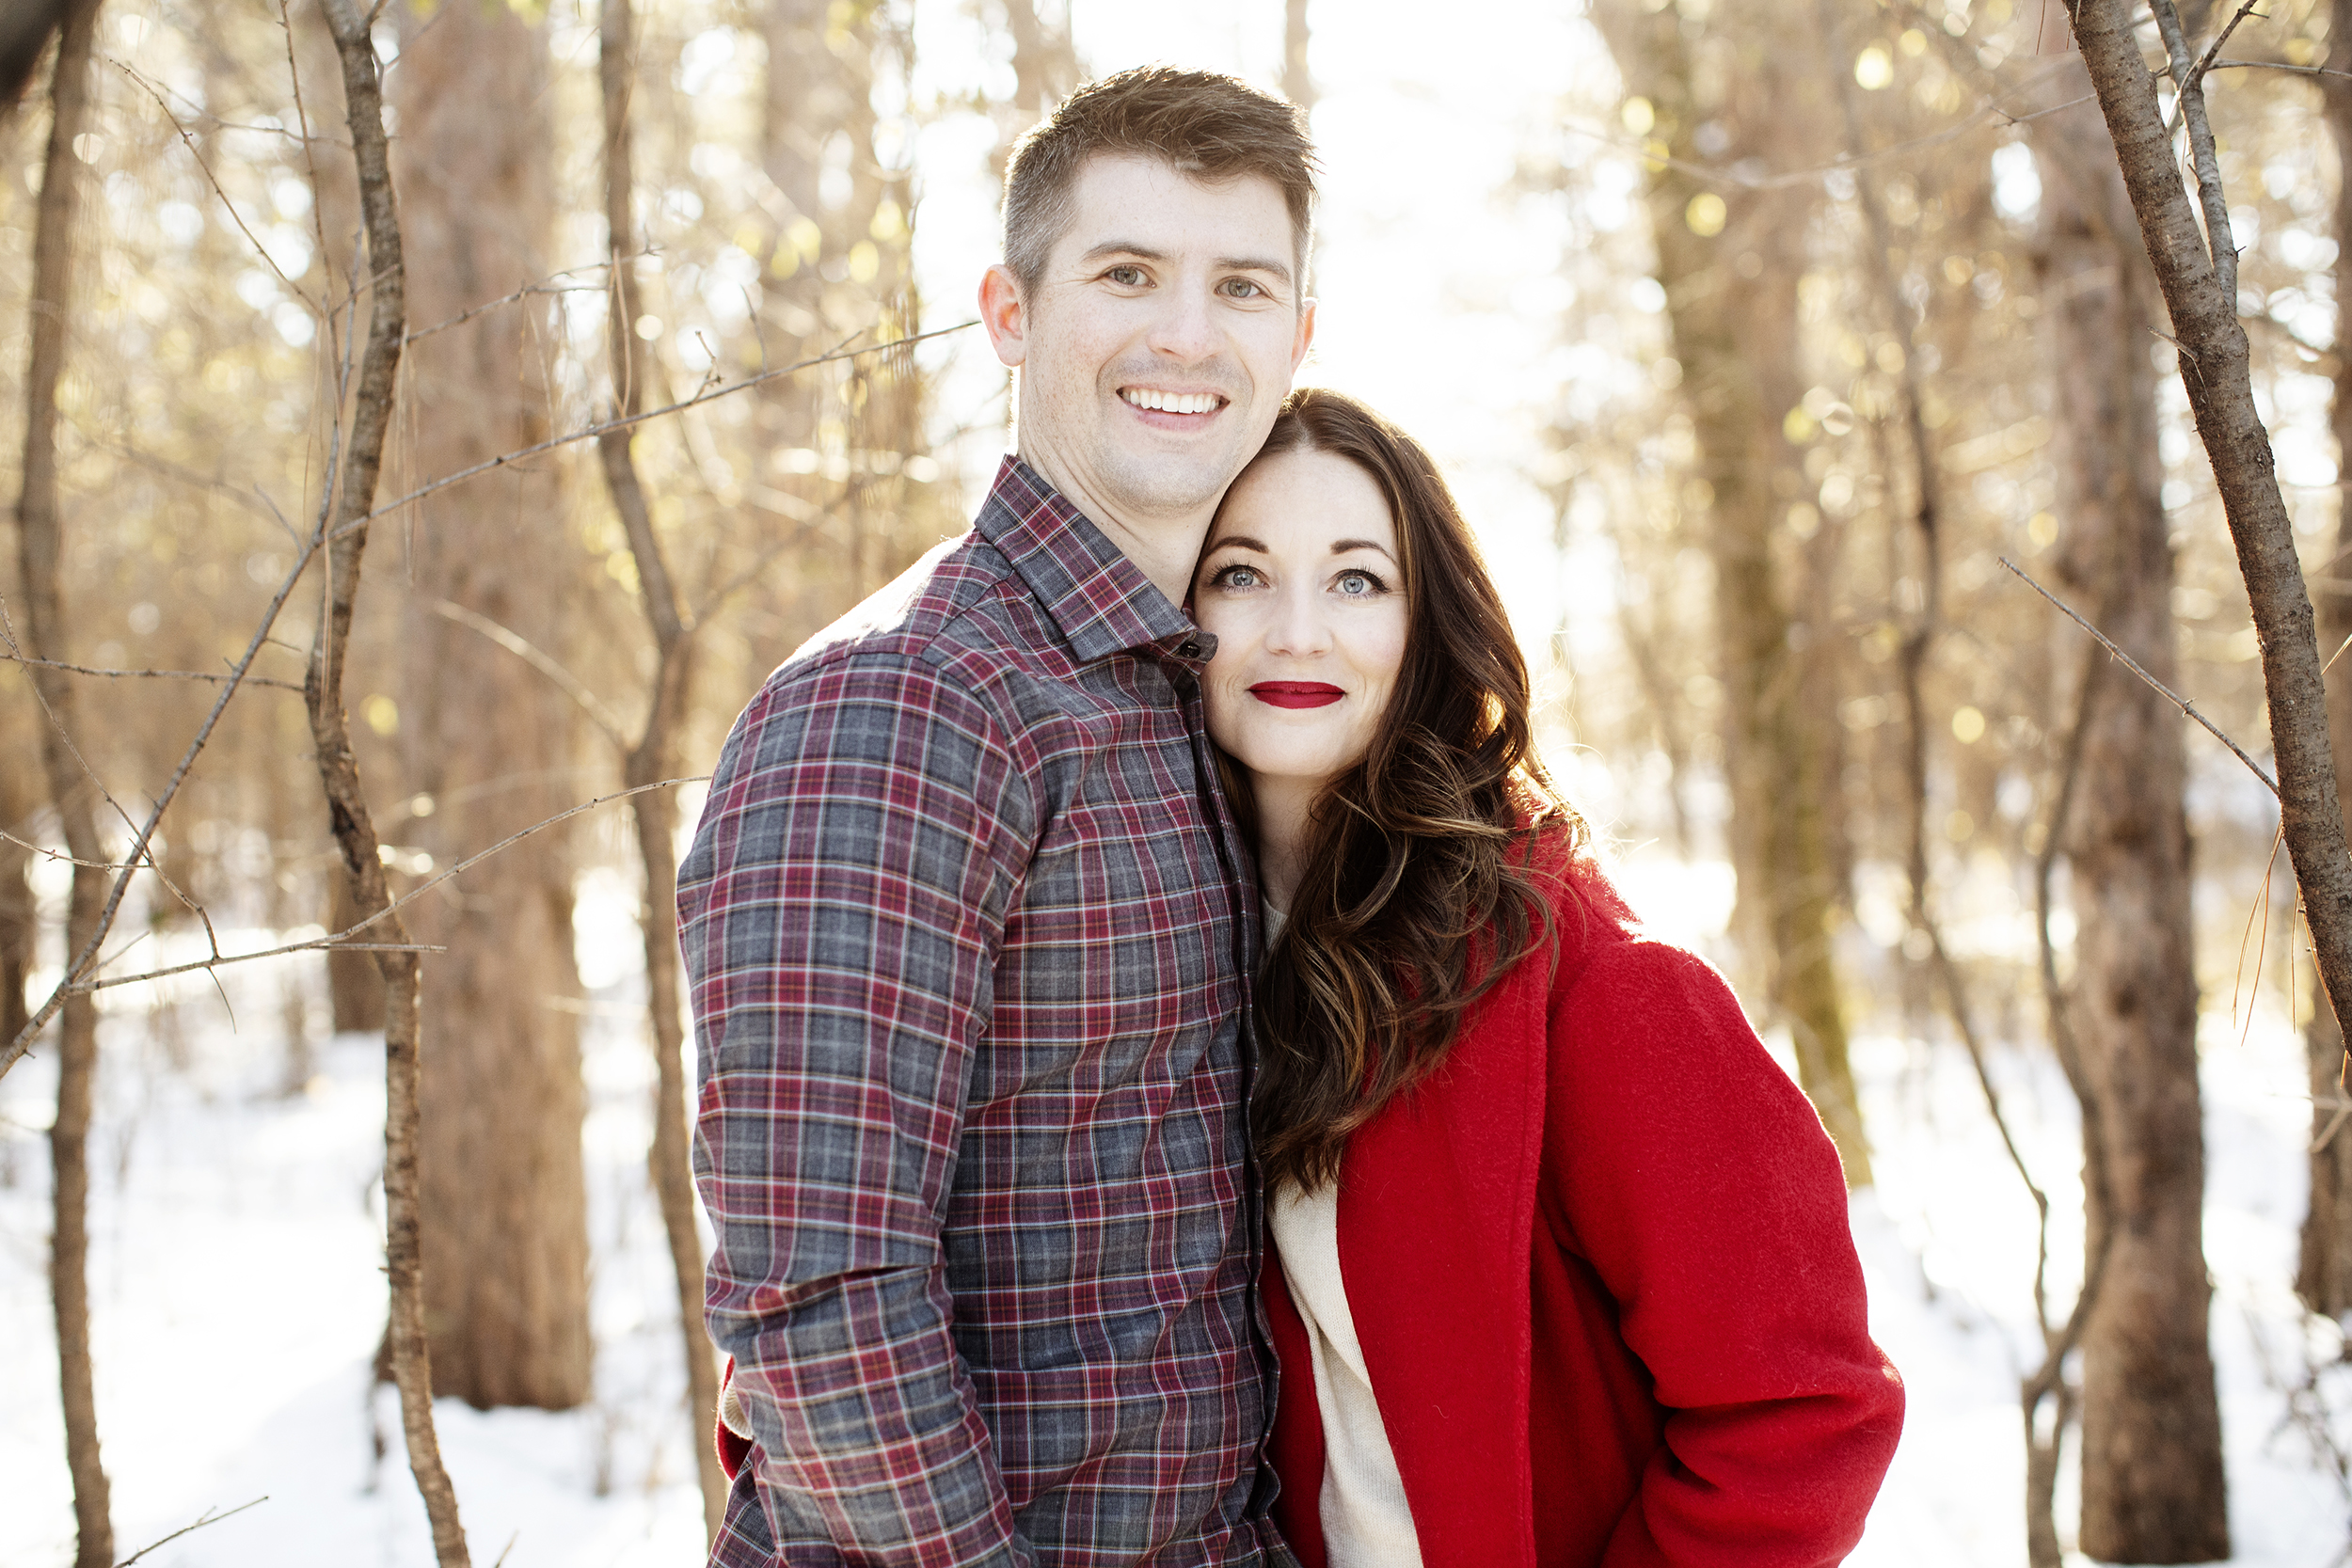 Winter Engagement Session | Afton State Park, MN | Photography by Photogen Inc. | Eliesa Johnson | Based in Minneapolis, Minnesota